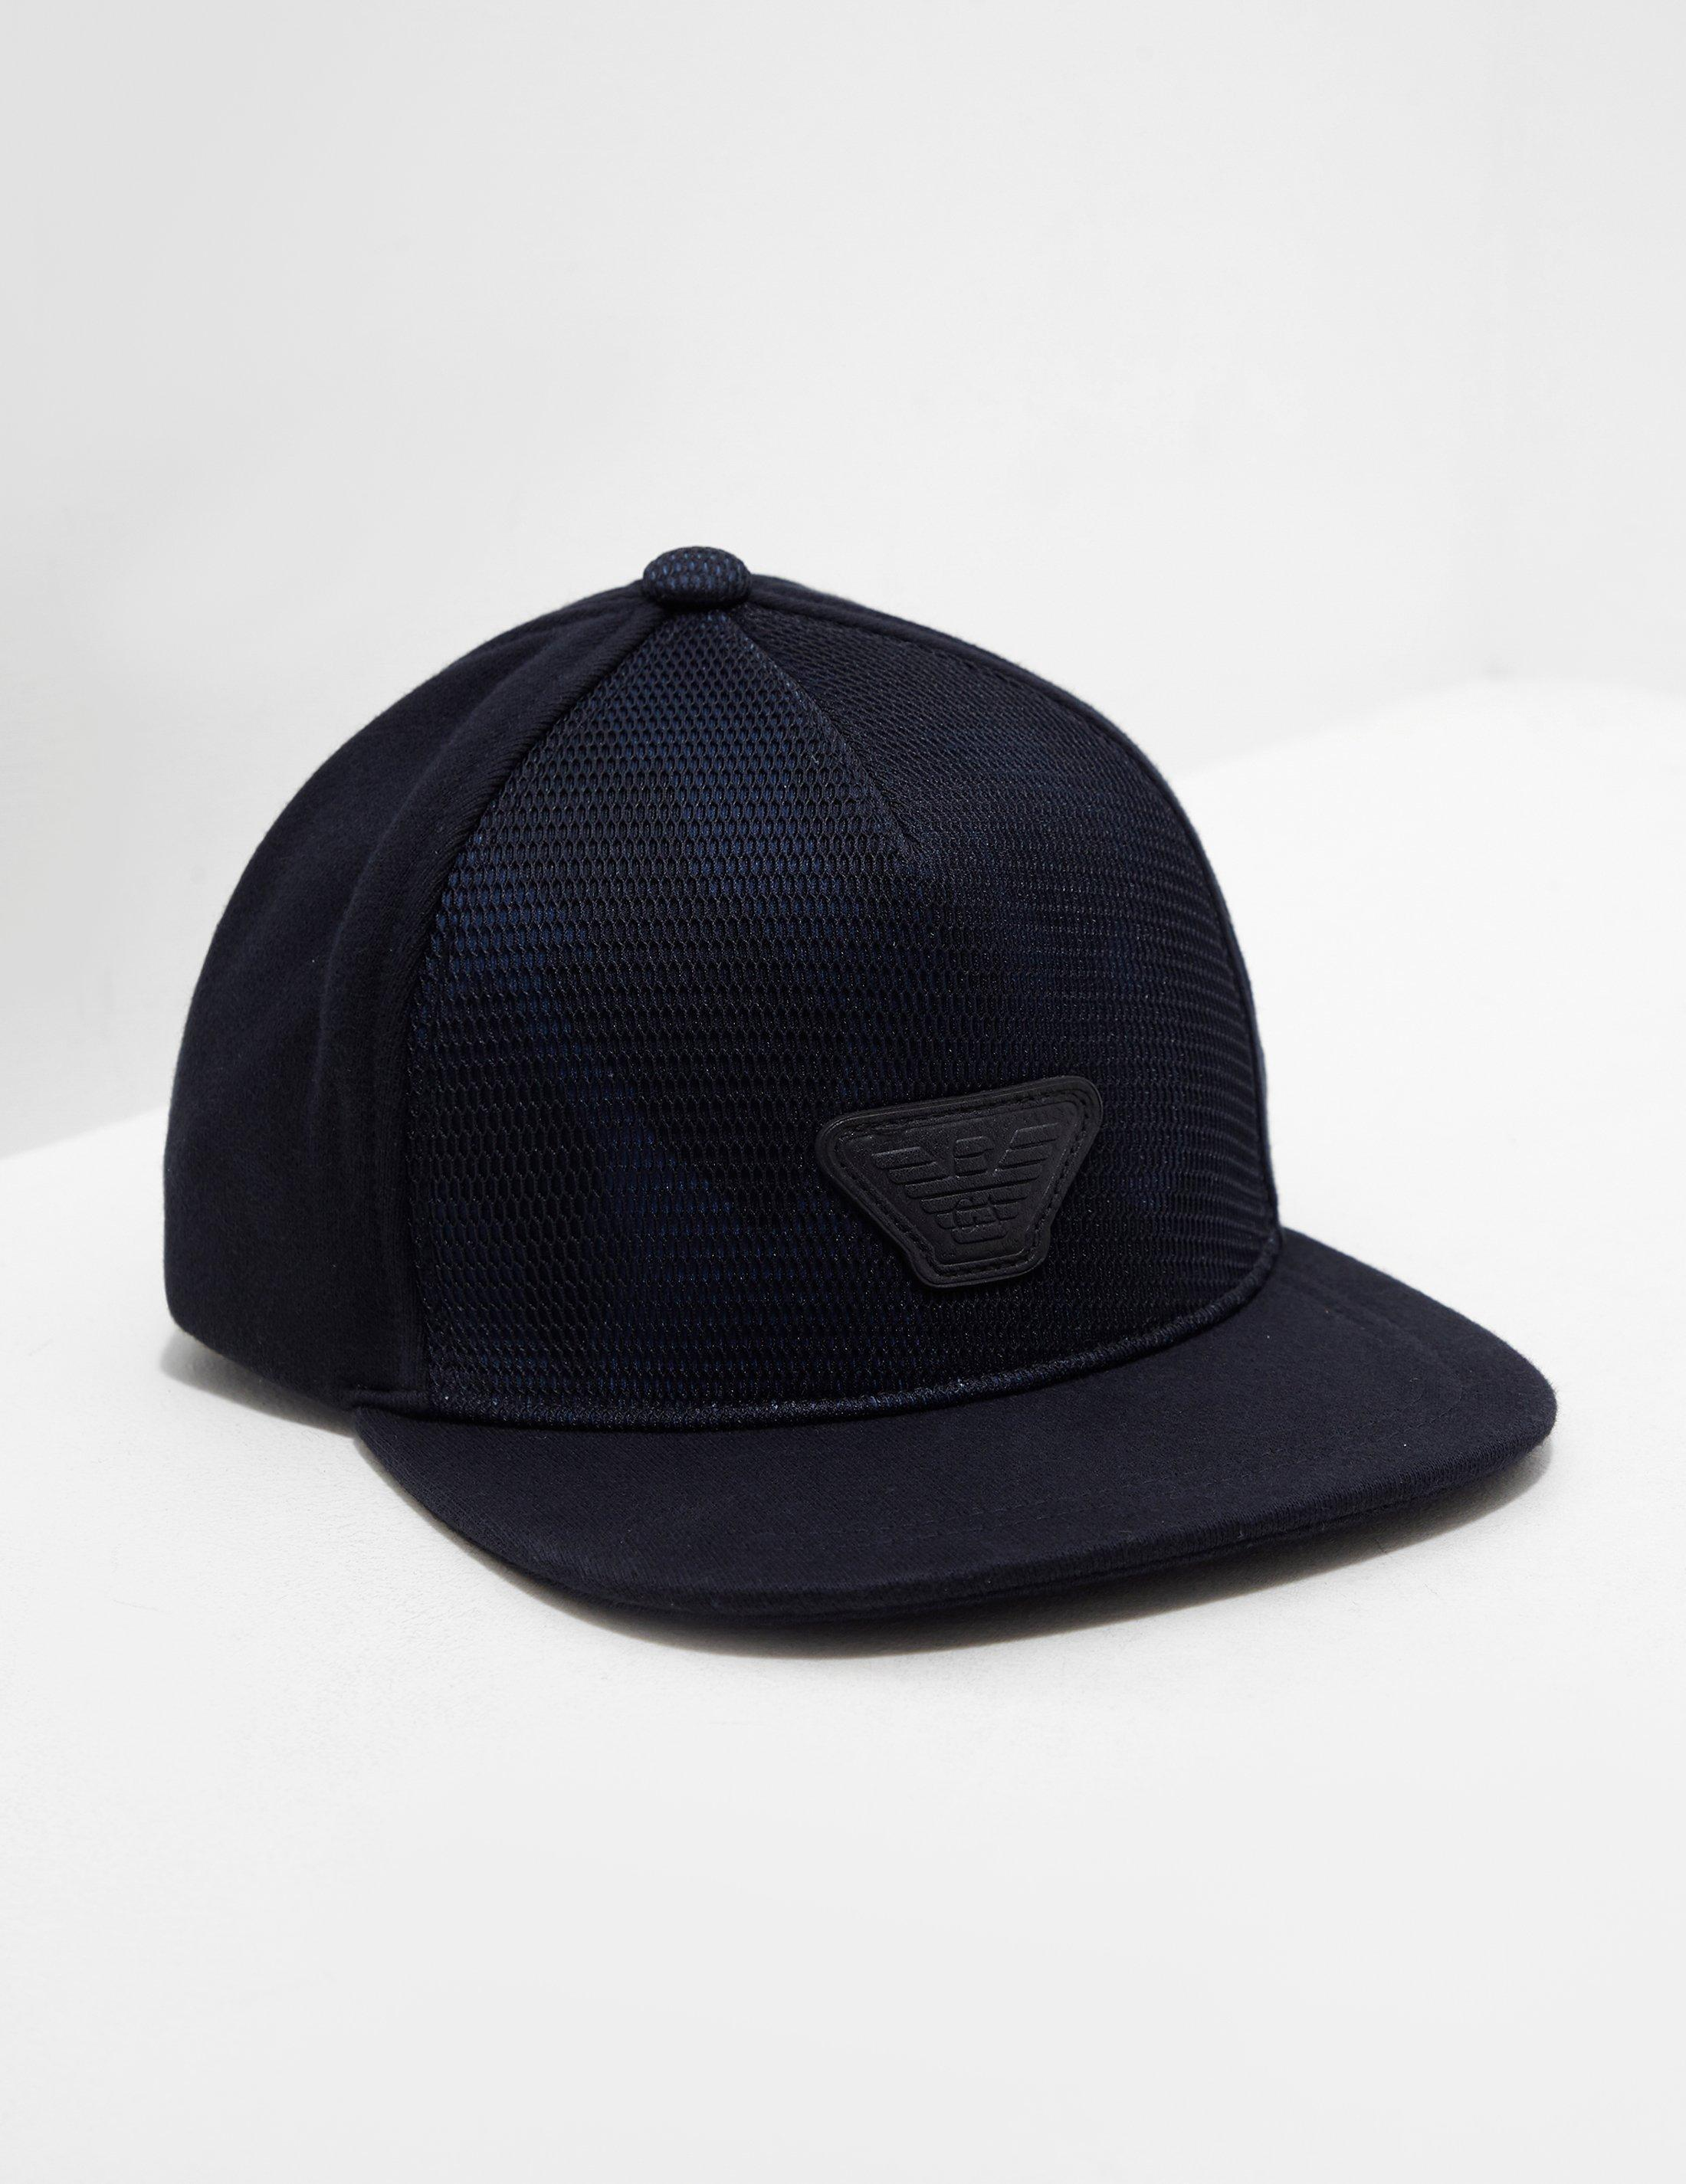 81069dfe97f Emporio Armani Mens Mesh Camouflage Cap Navy Blue in Blue for Men - Lyst